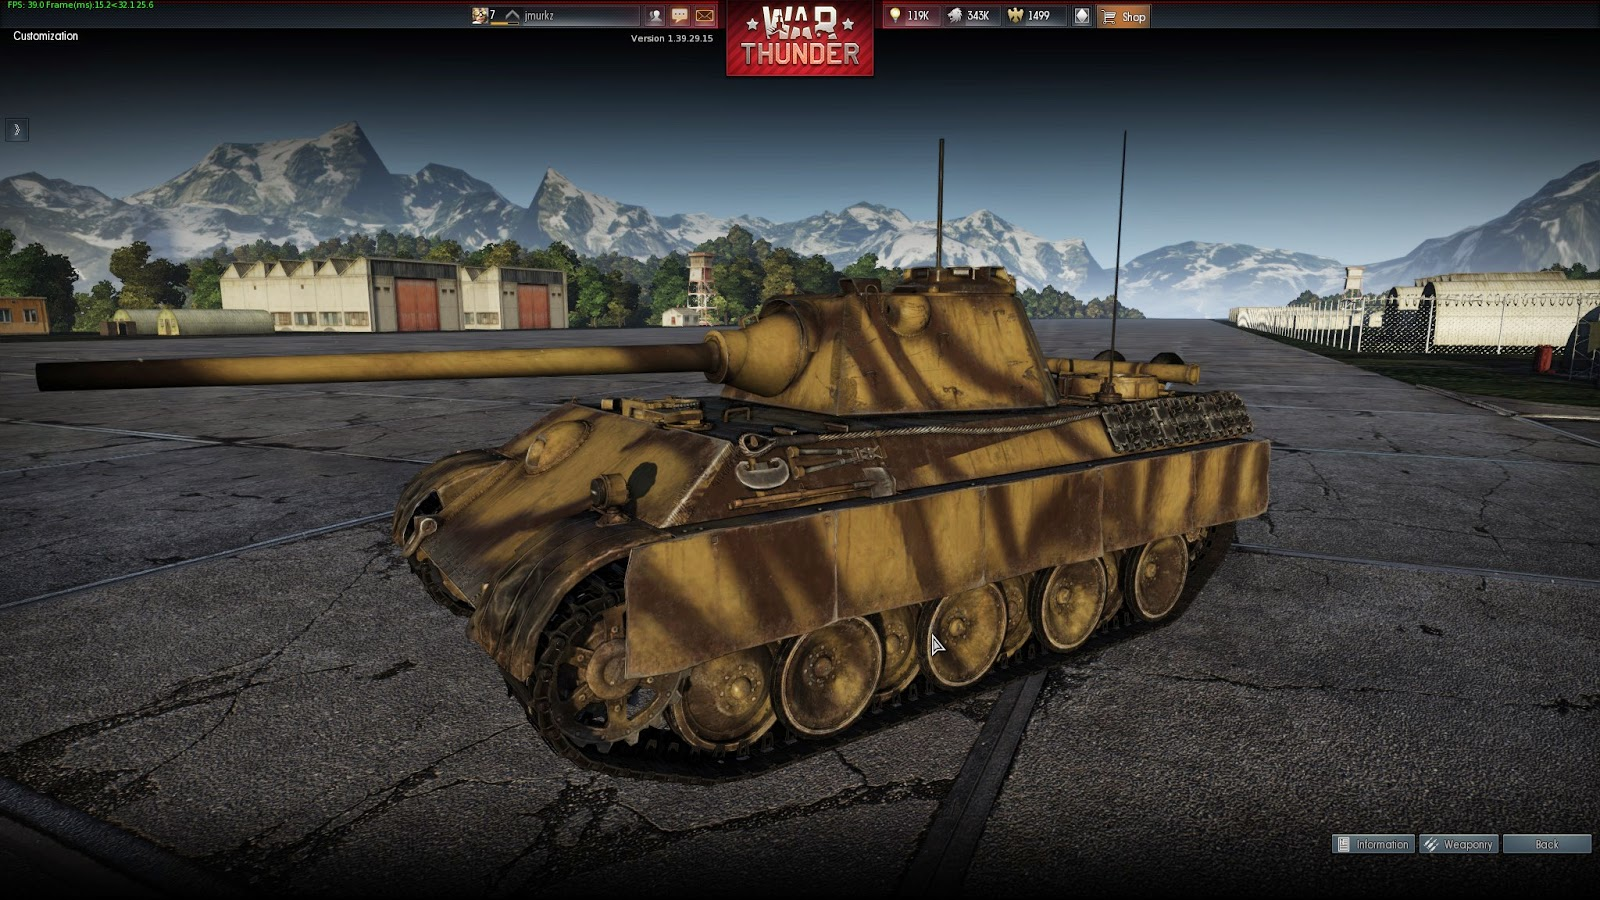 War Thunder CBT on Public Server Shot+2014.04.22+21.40.19